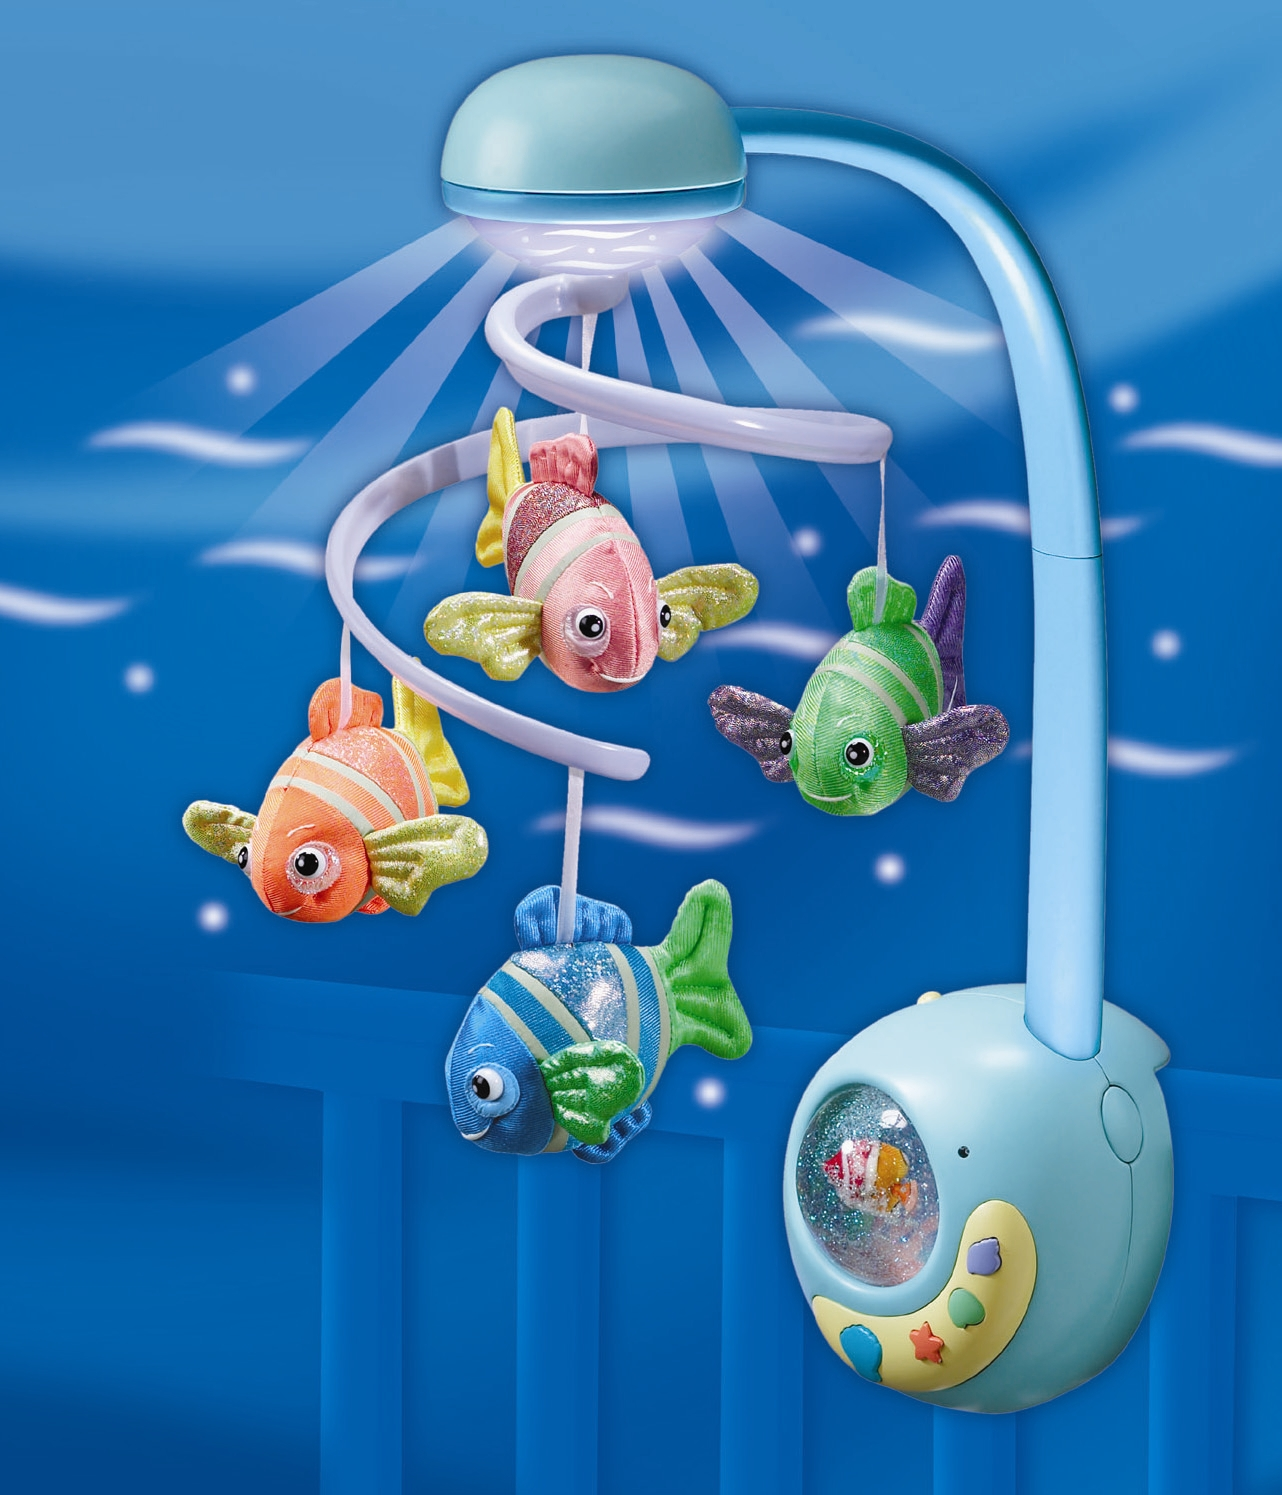 calypso remote control crib mobile brings fun and fascination of the sea to baby s nursery. Black Bedroom Furniture Sets. Home Design Ideas